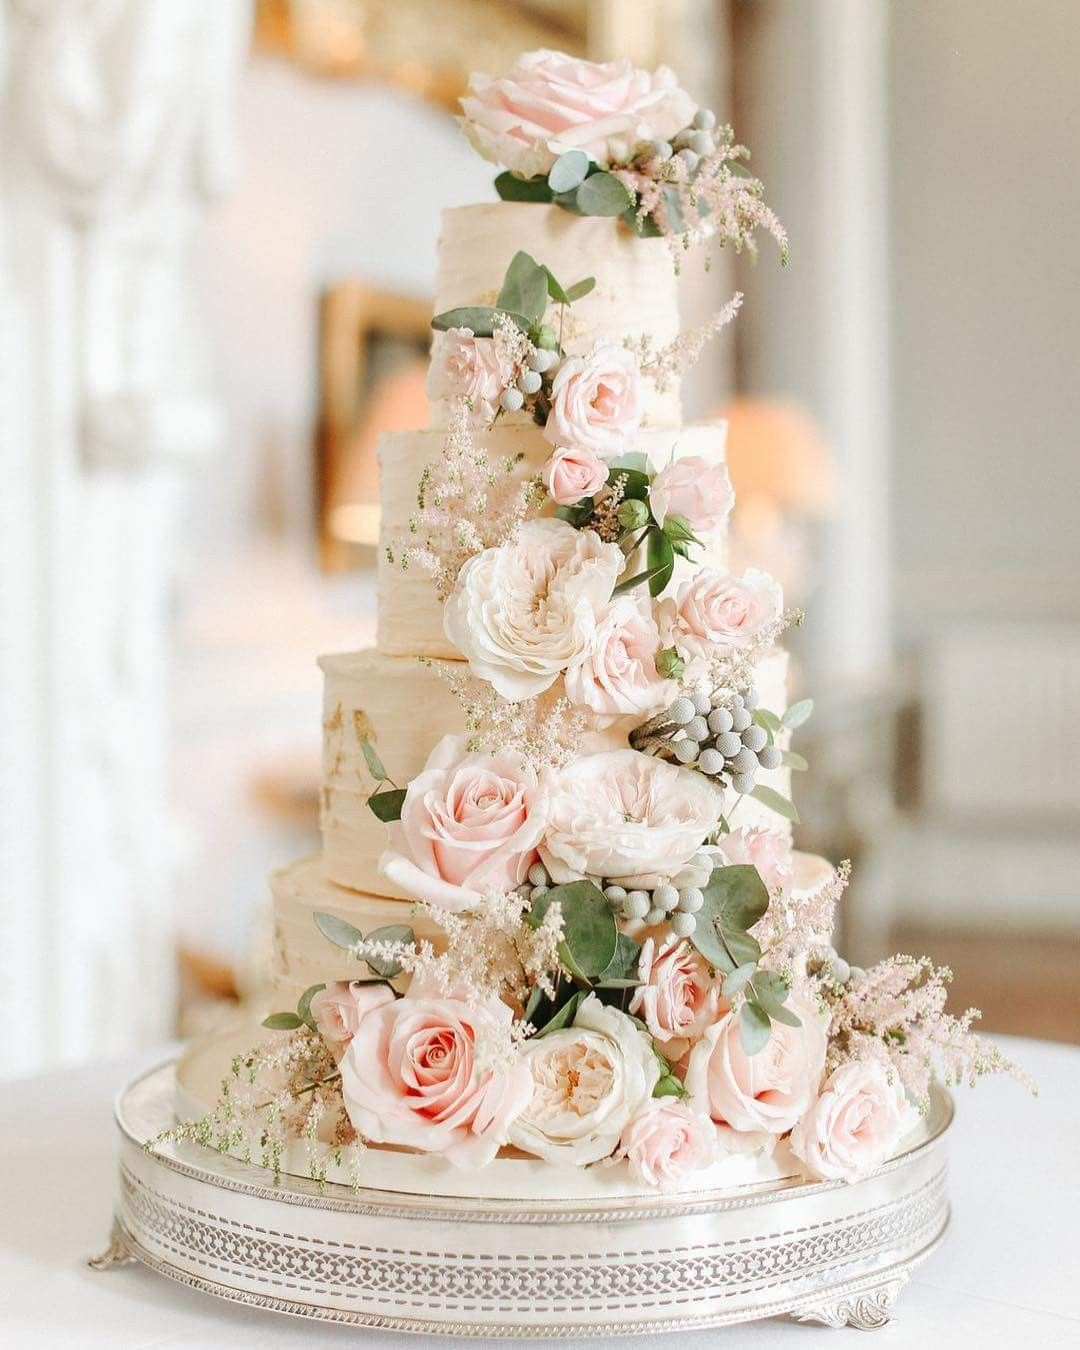 Pin By A C On Cake Collection Dessert Tables Wedding Cake Inspiration Wedding Cake Fresh Flowers Wedding Cakes